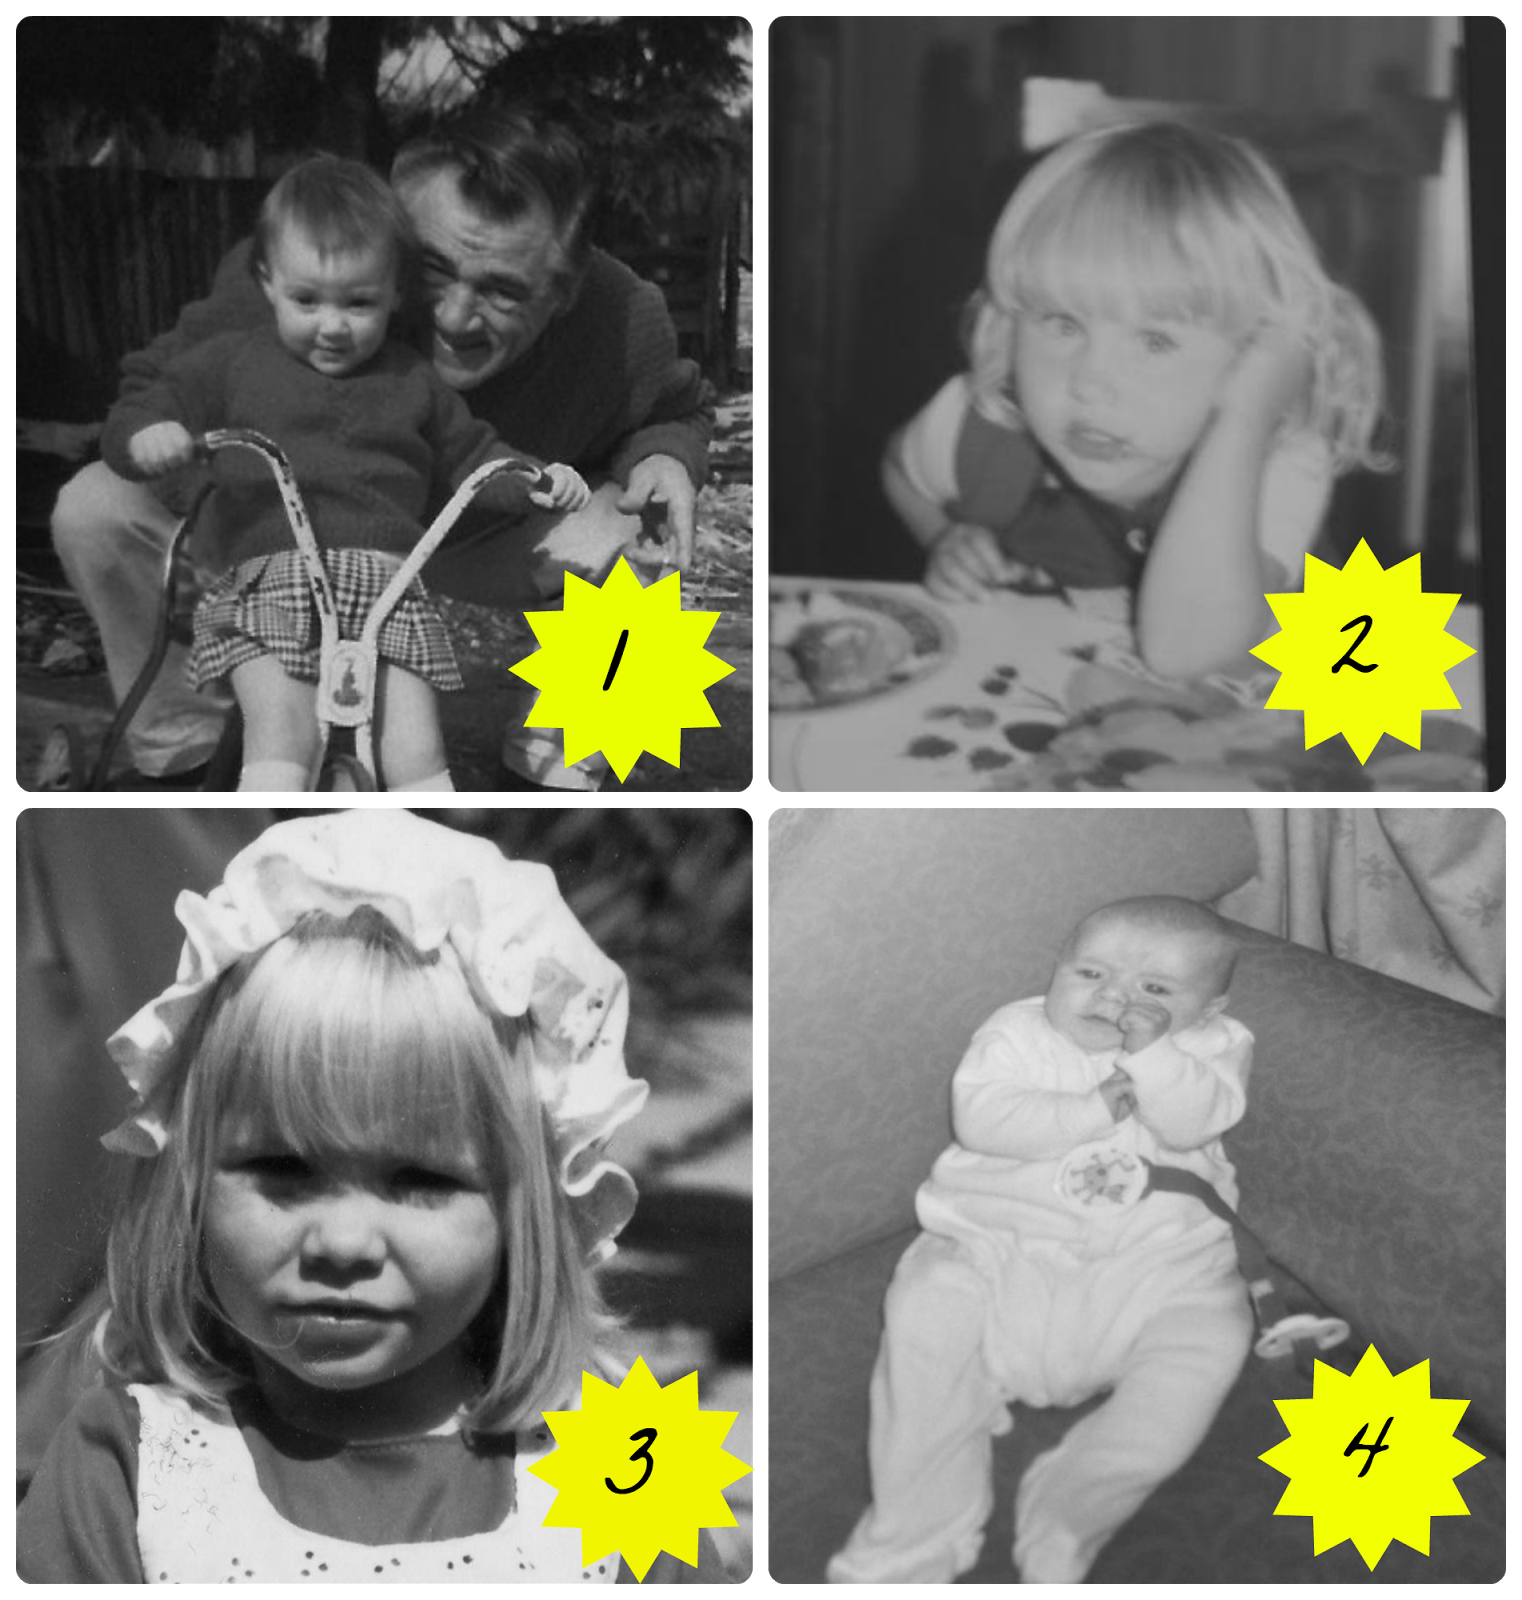 Guess the Baby #01